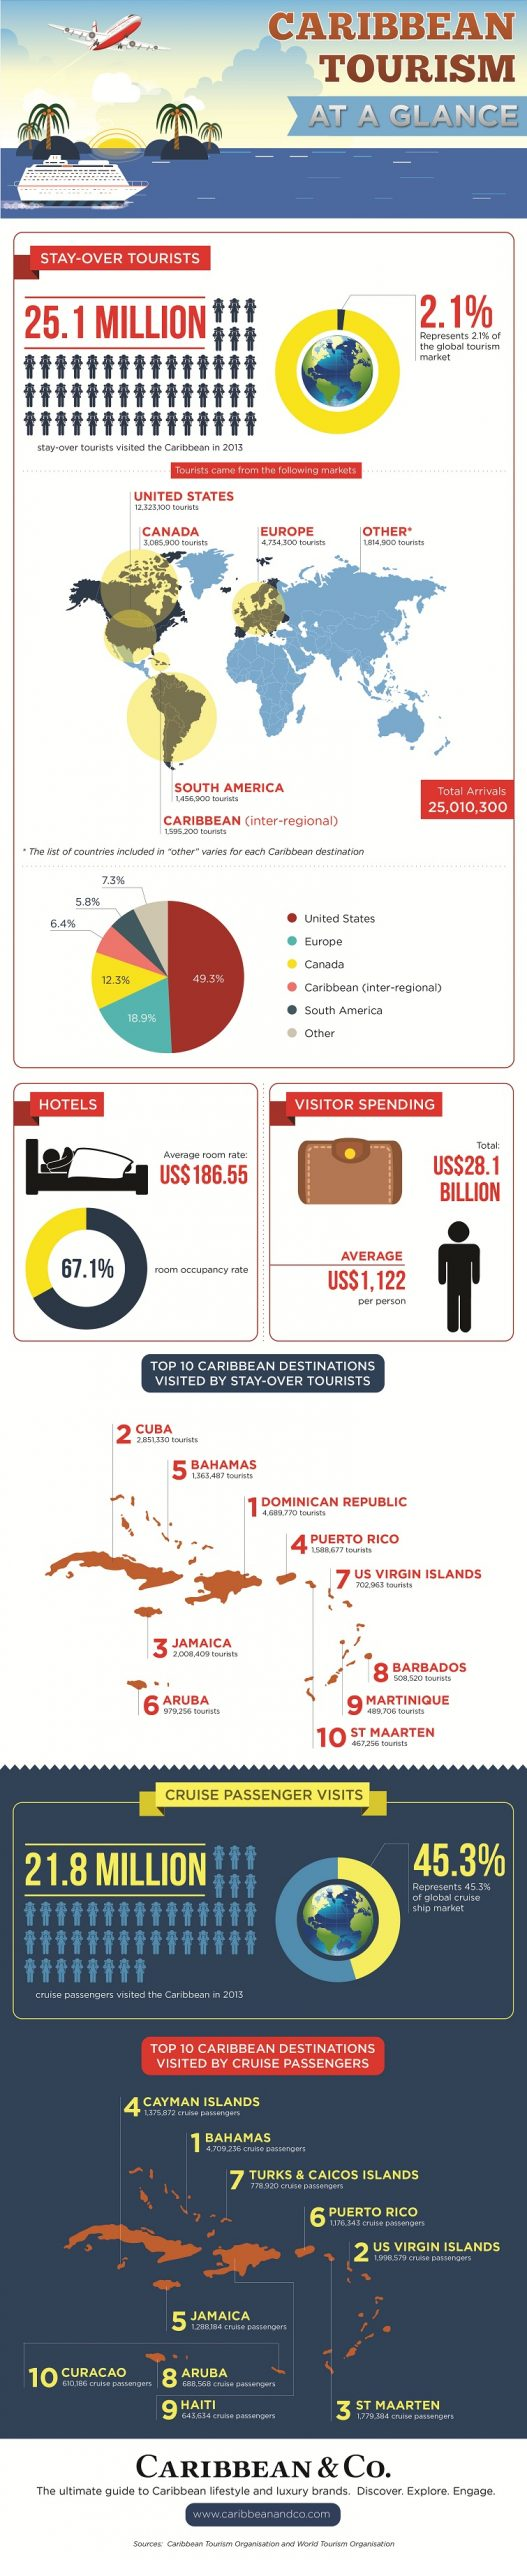 Caribbean Tourism At A Glance